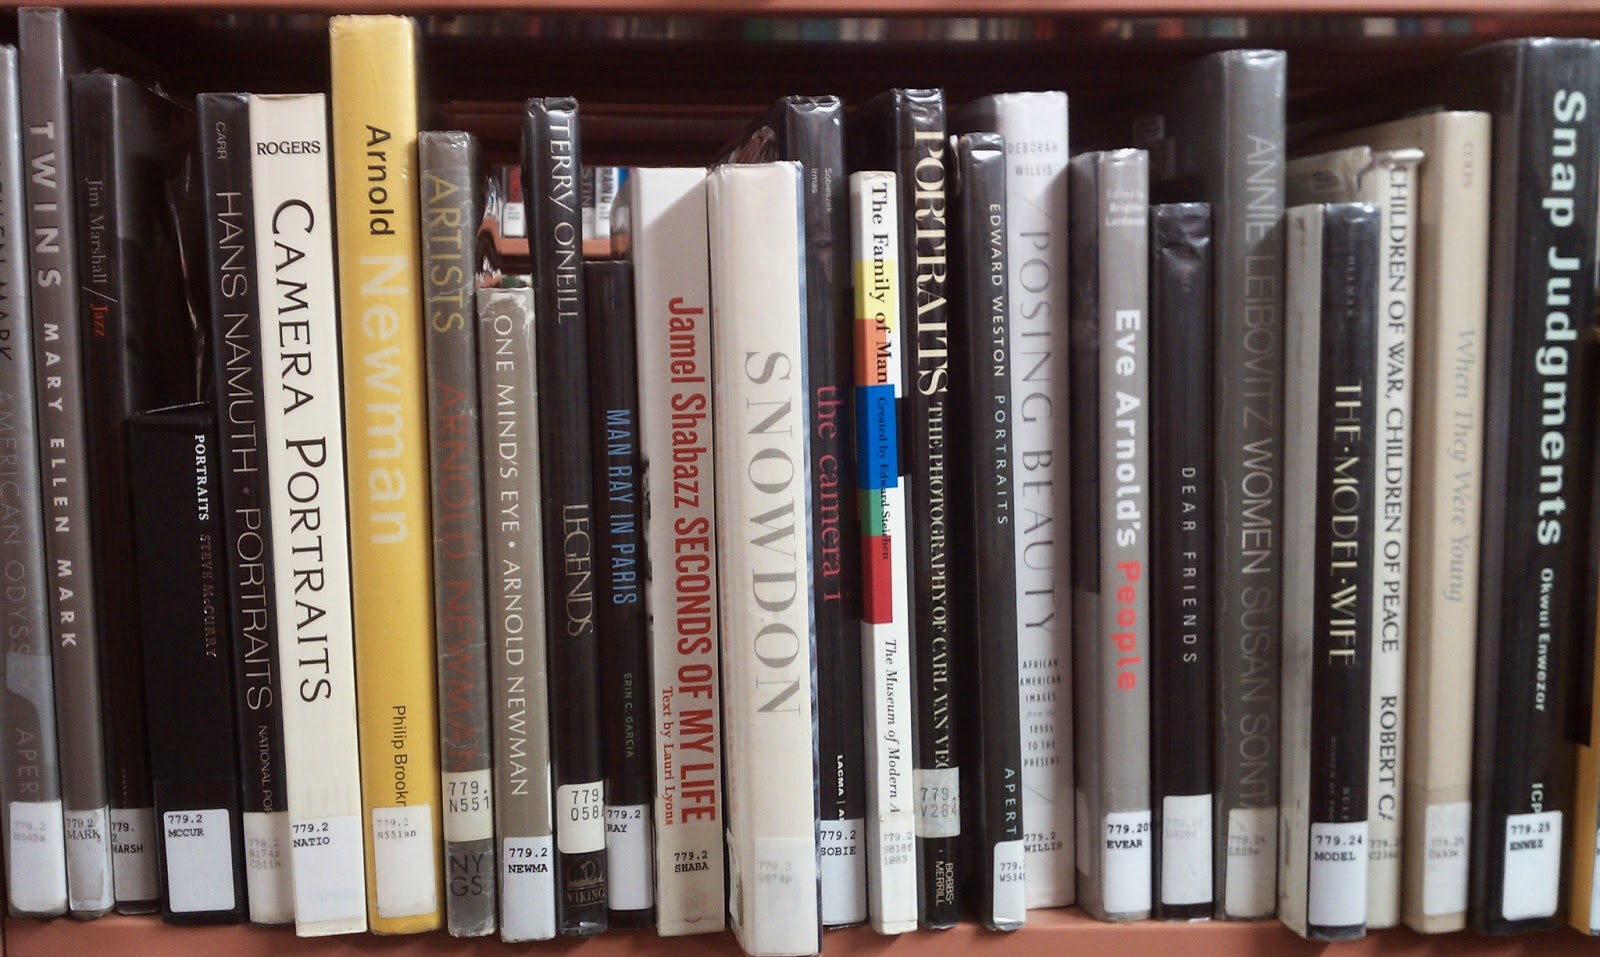 Jfwphoto Blog Just Photography Books On The Shelf